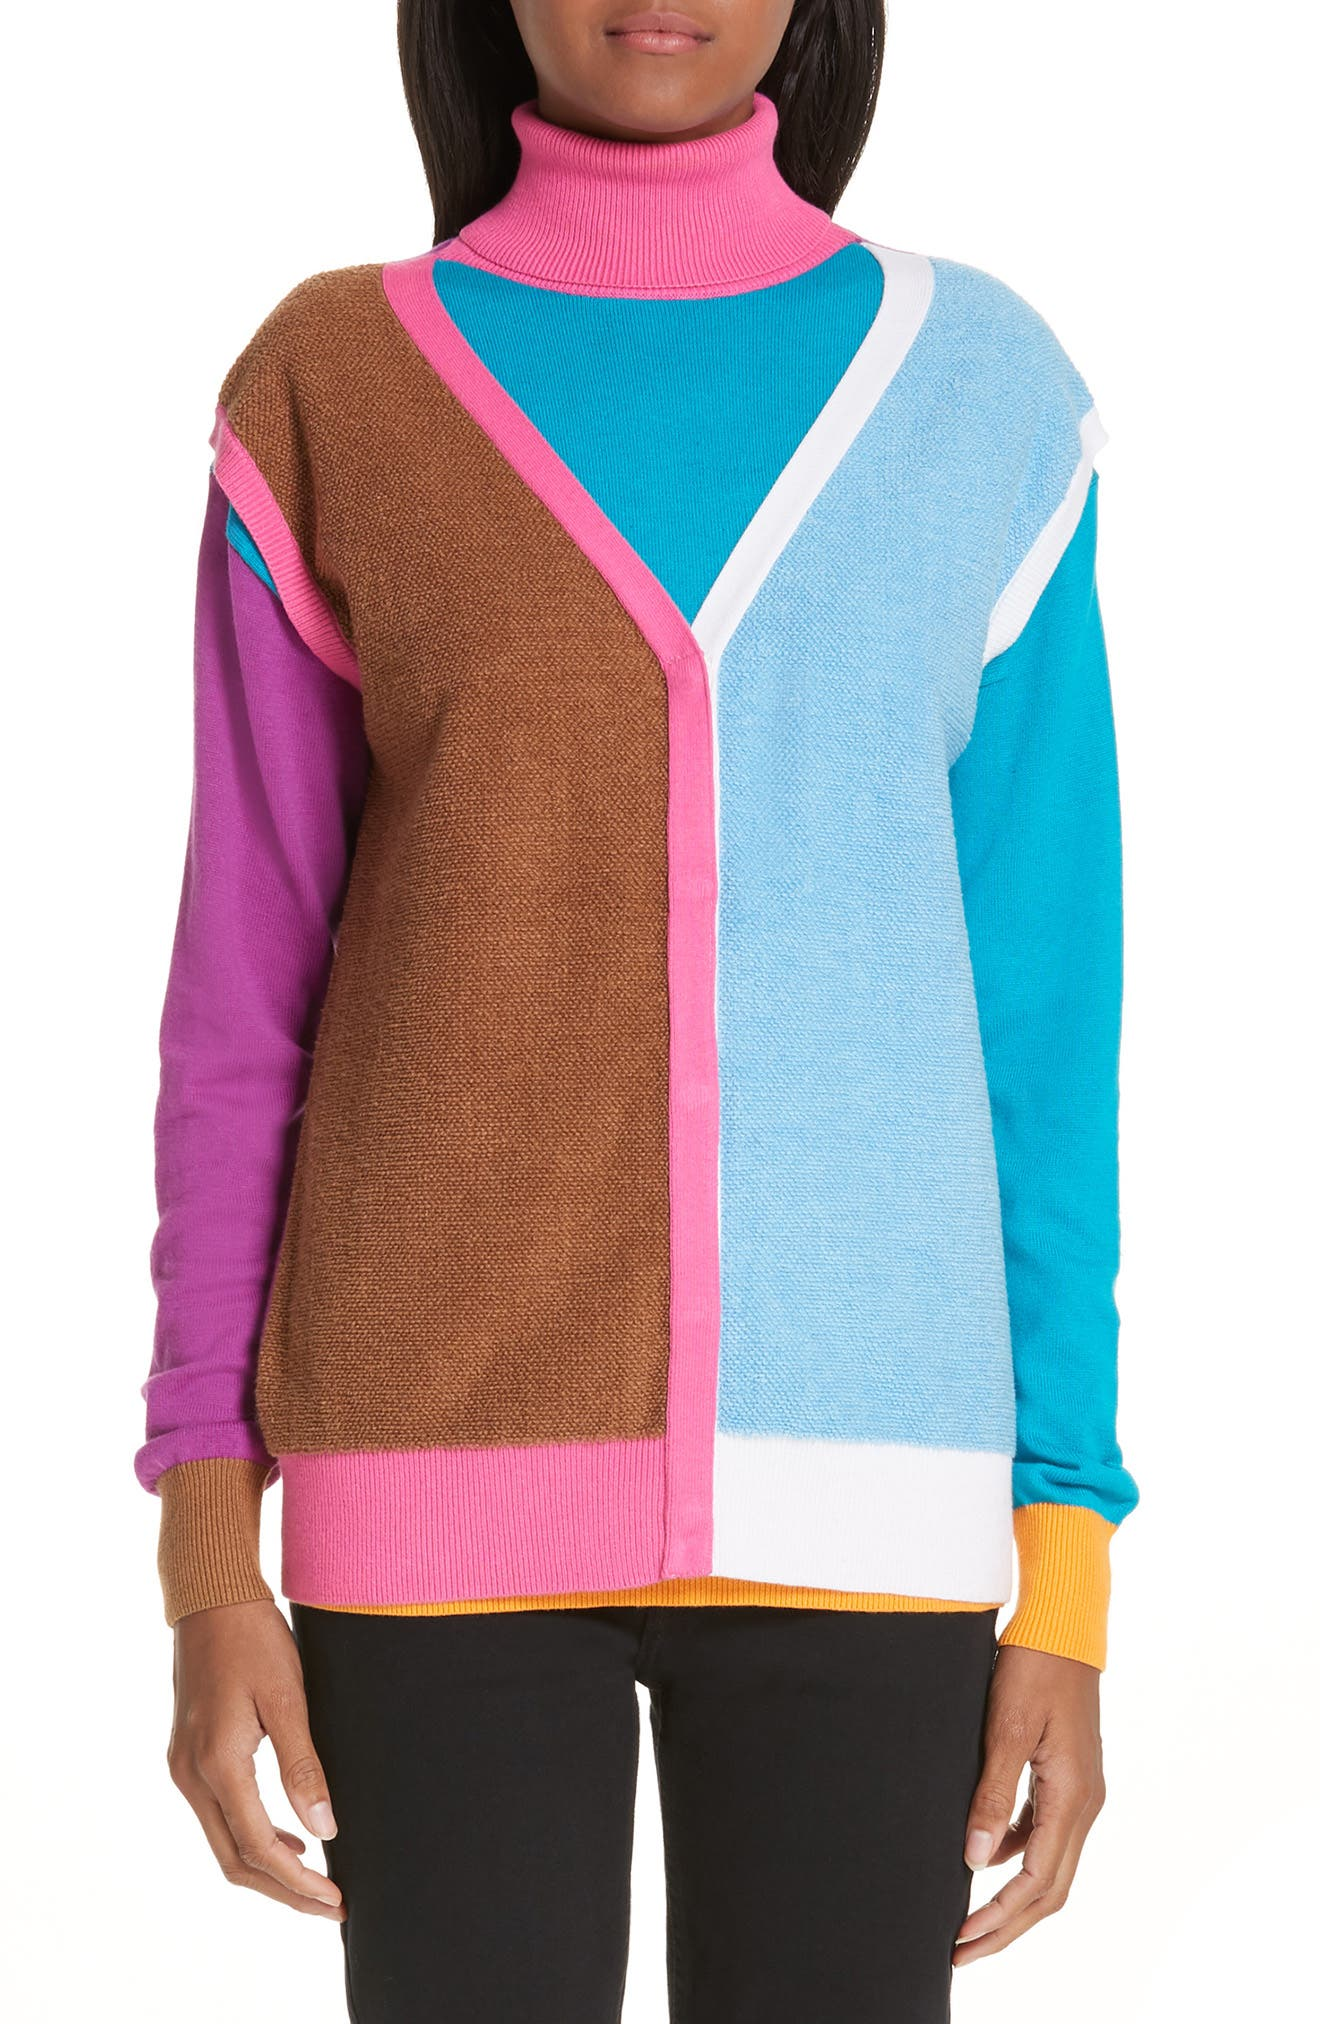 VICTOR GLEMAUD Layered Cotton & Cashmere Sweater in Pink/Blue/Sand Combo